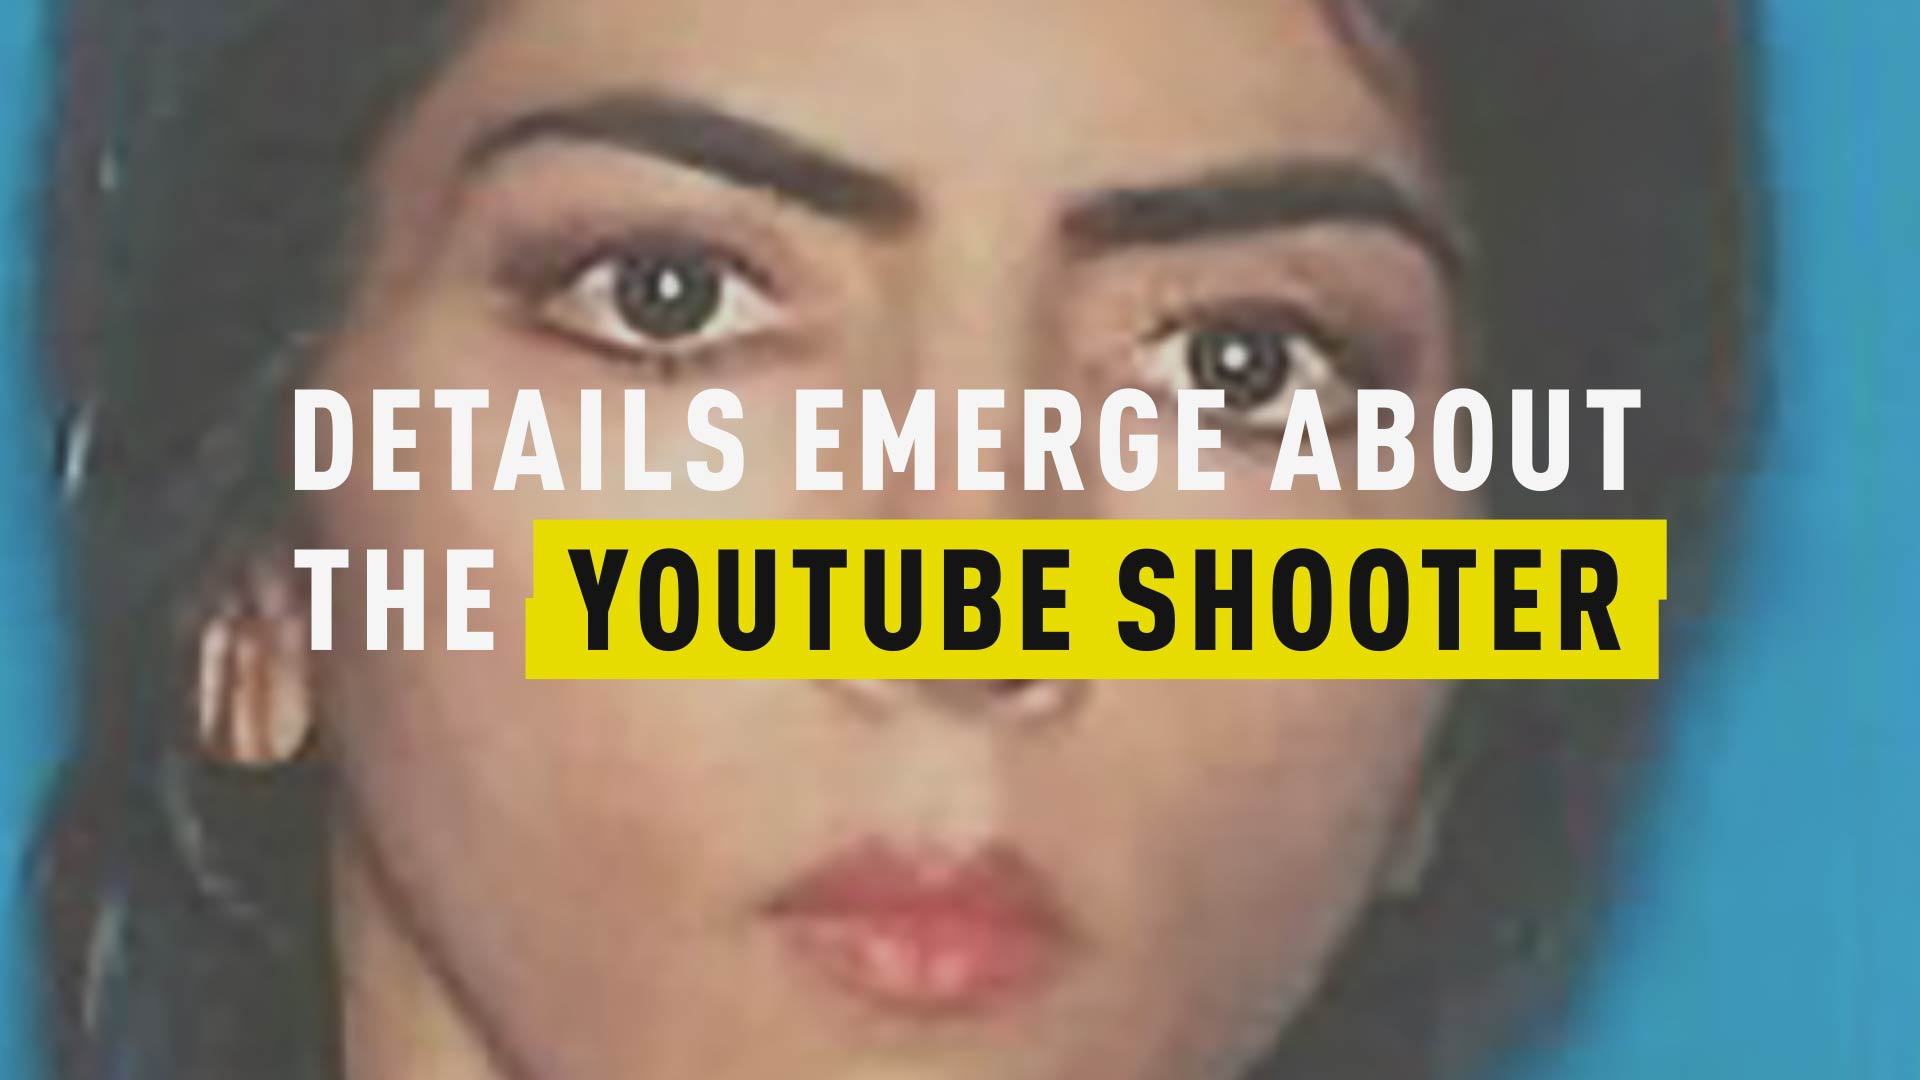 Details Emerge About The YouTube Shooter